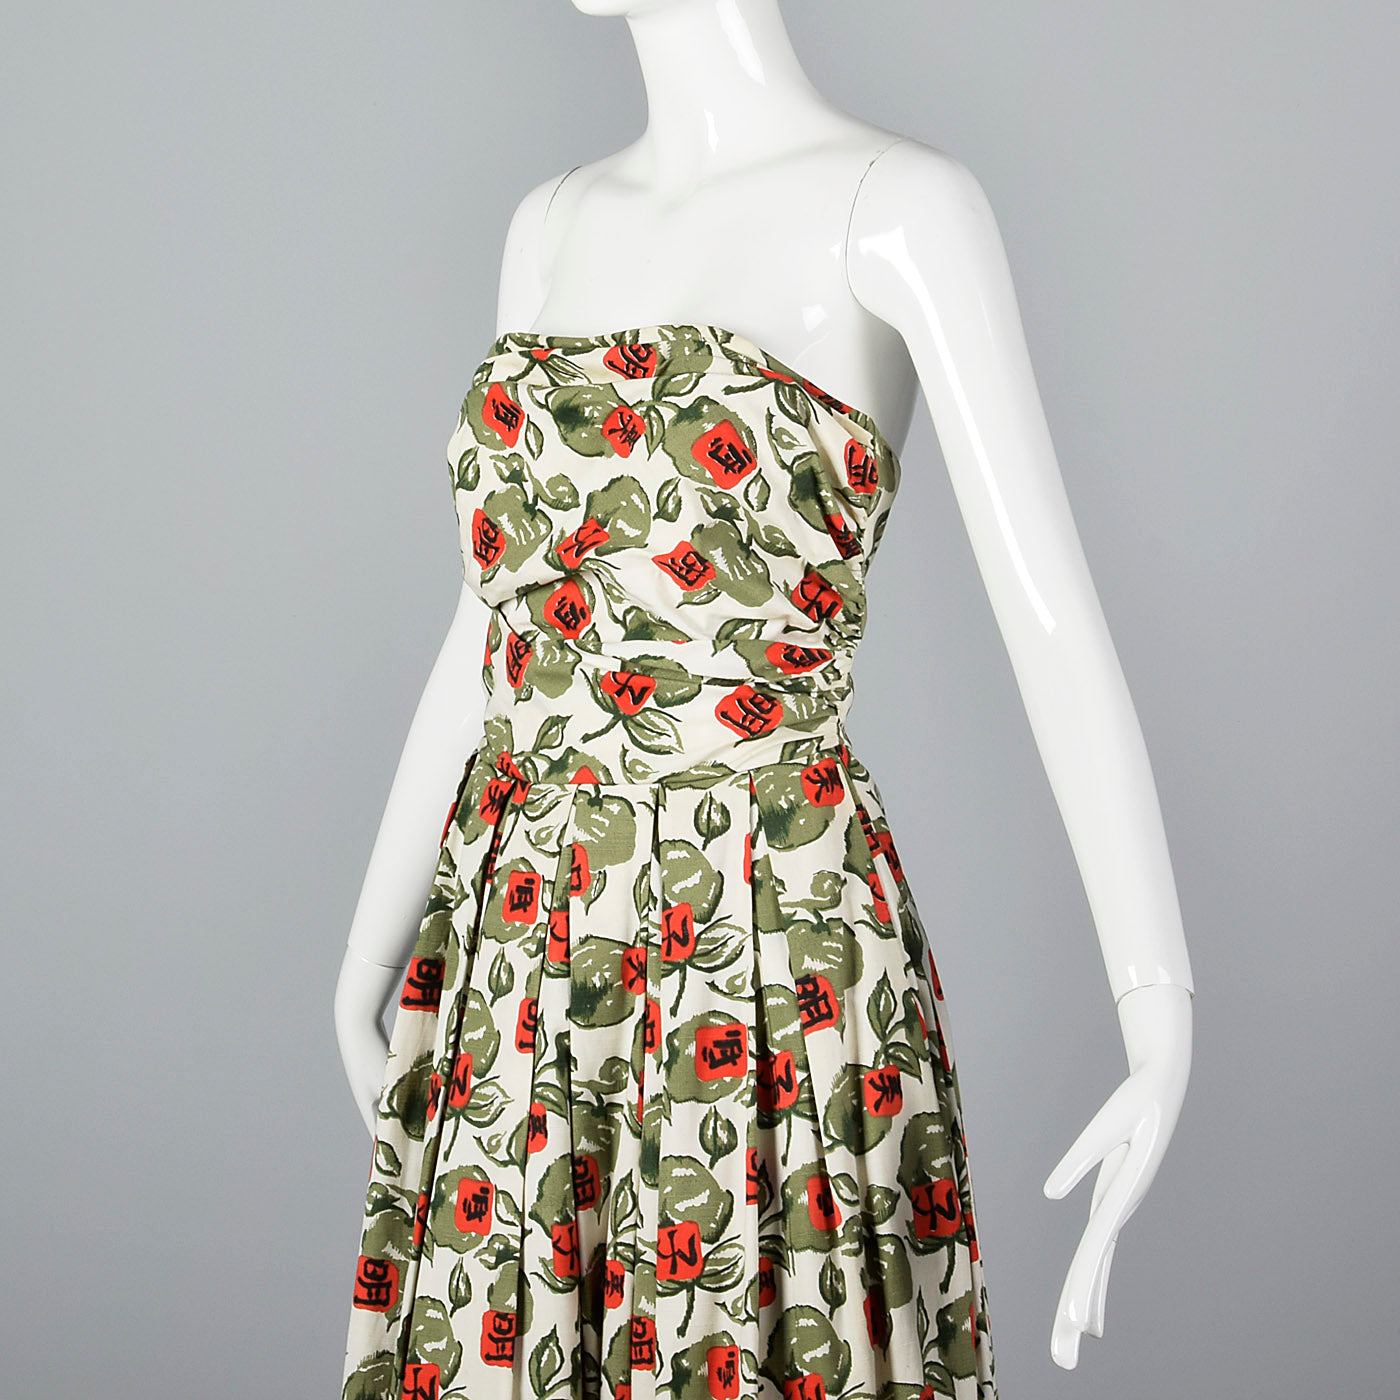 1950s Horrockses Novelty Print Strapless Dress